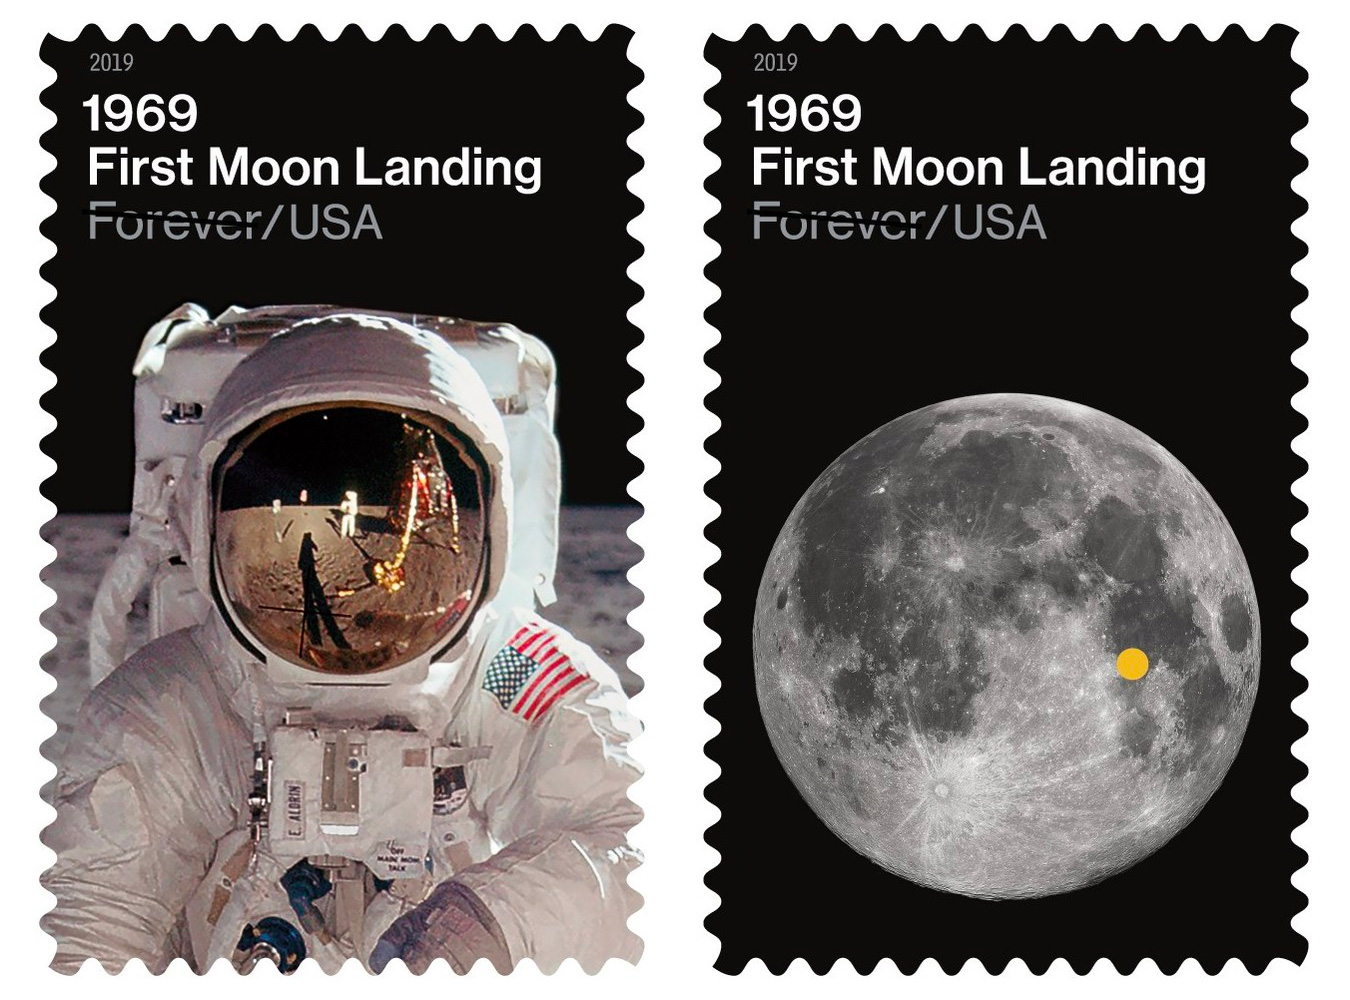 6a82bc16 The fiftieth anniversary of the historic Apollo 11 moon landings have  inspired a growing range of new stamps from philatelic bureaux around the  world.